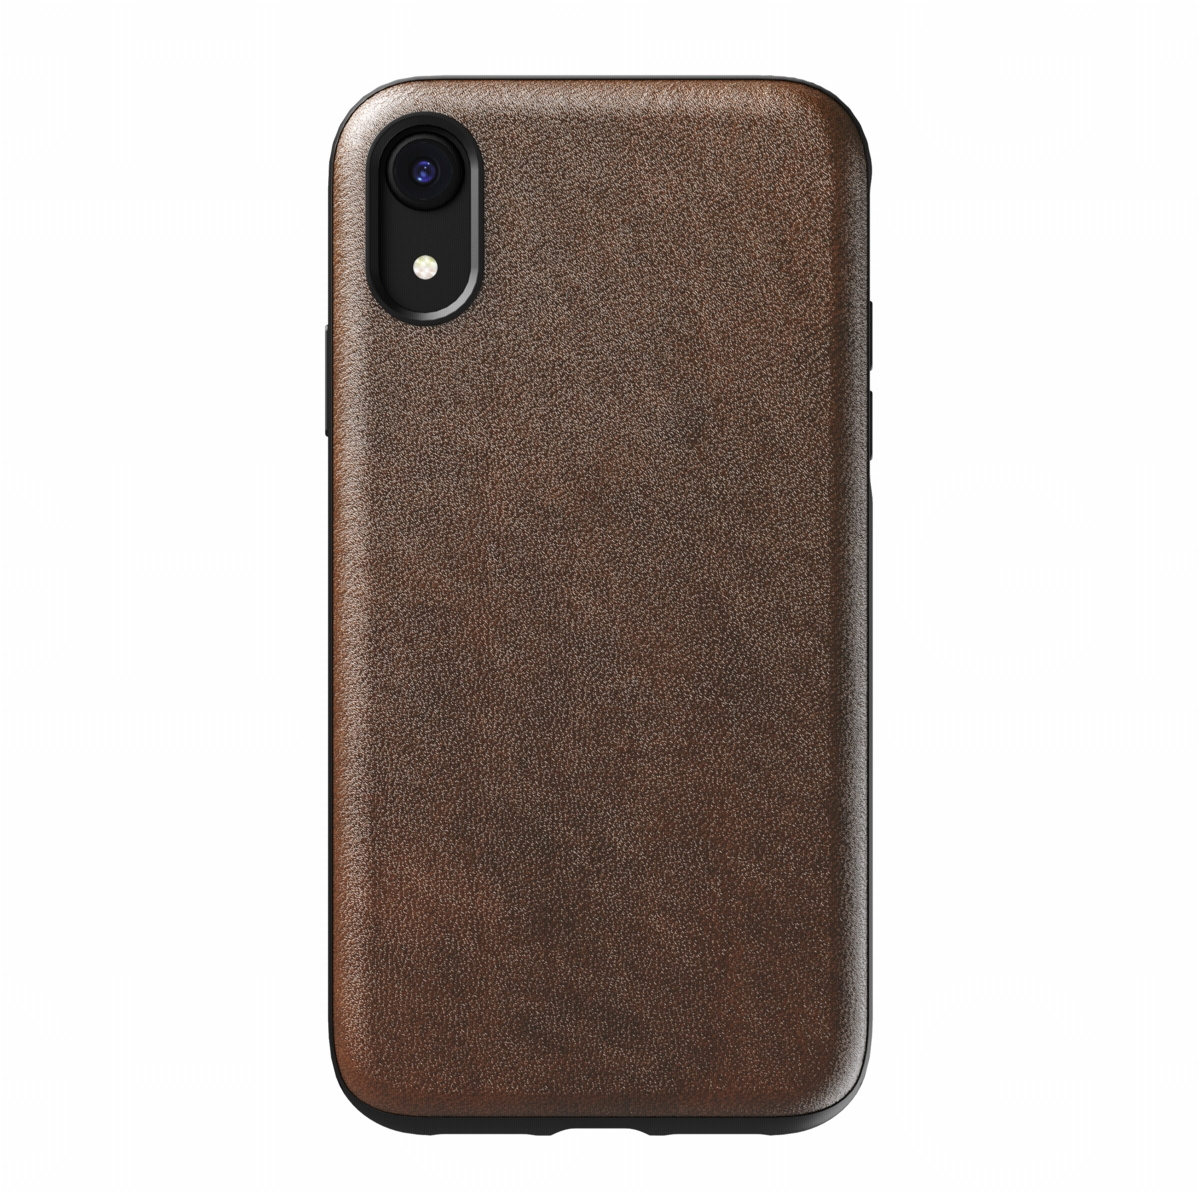 Nomad Case Leather Rugged Rustic Brown für iPhone XR